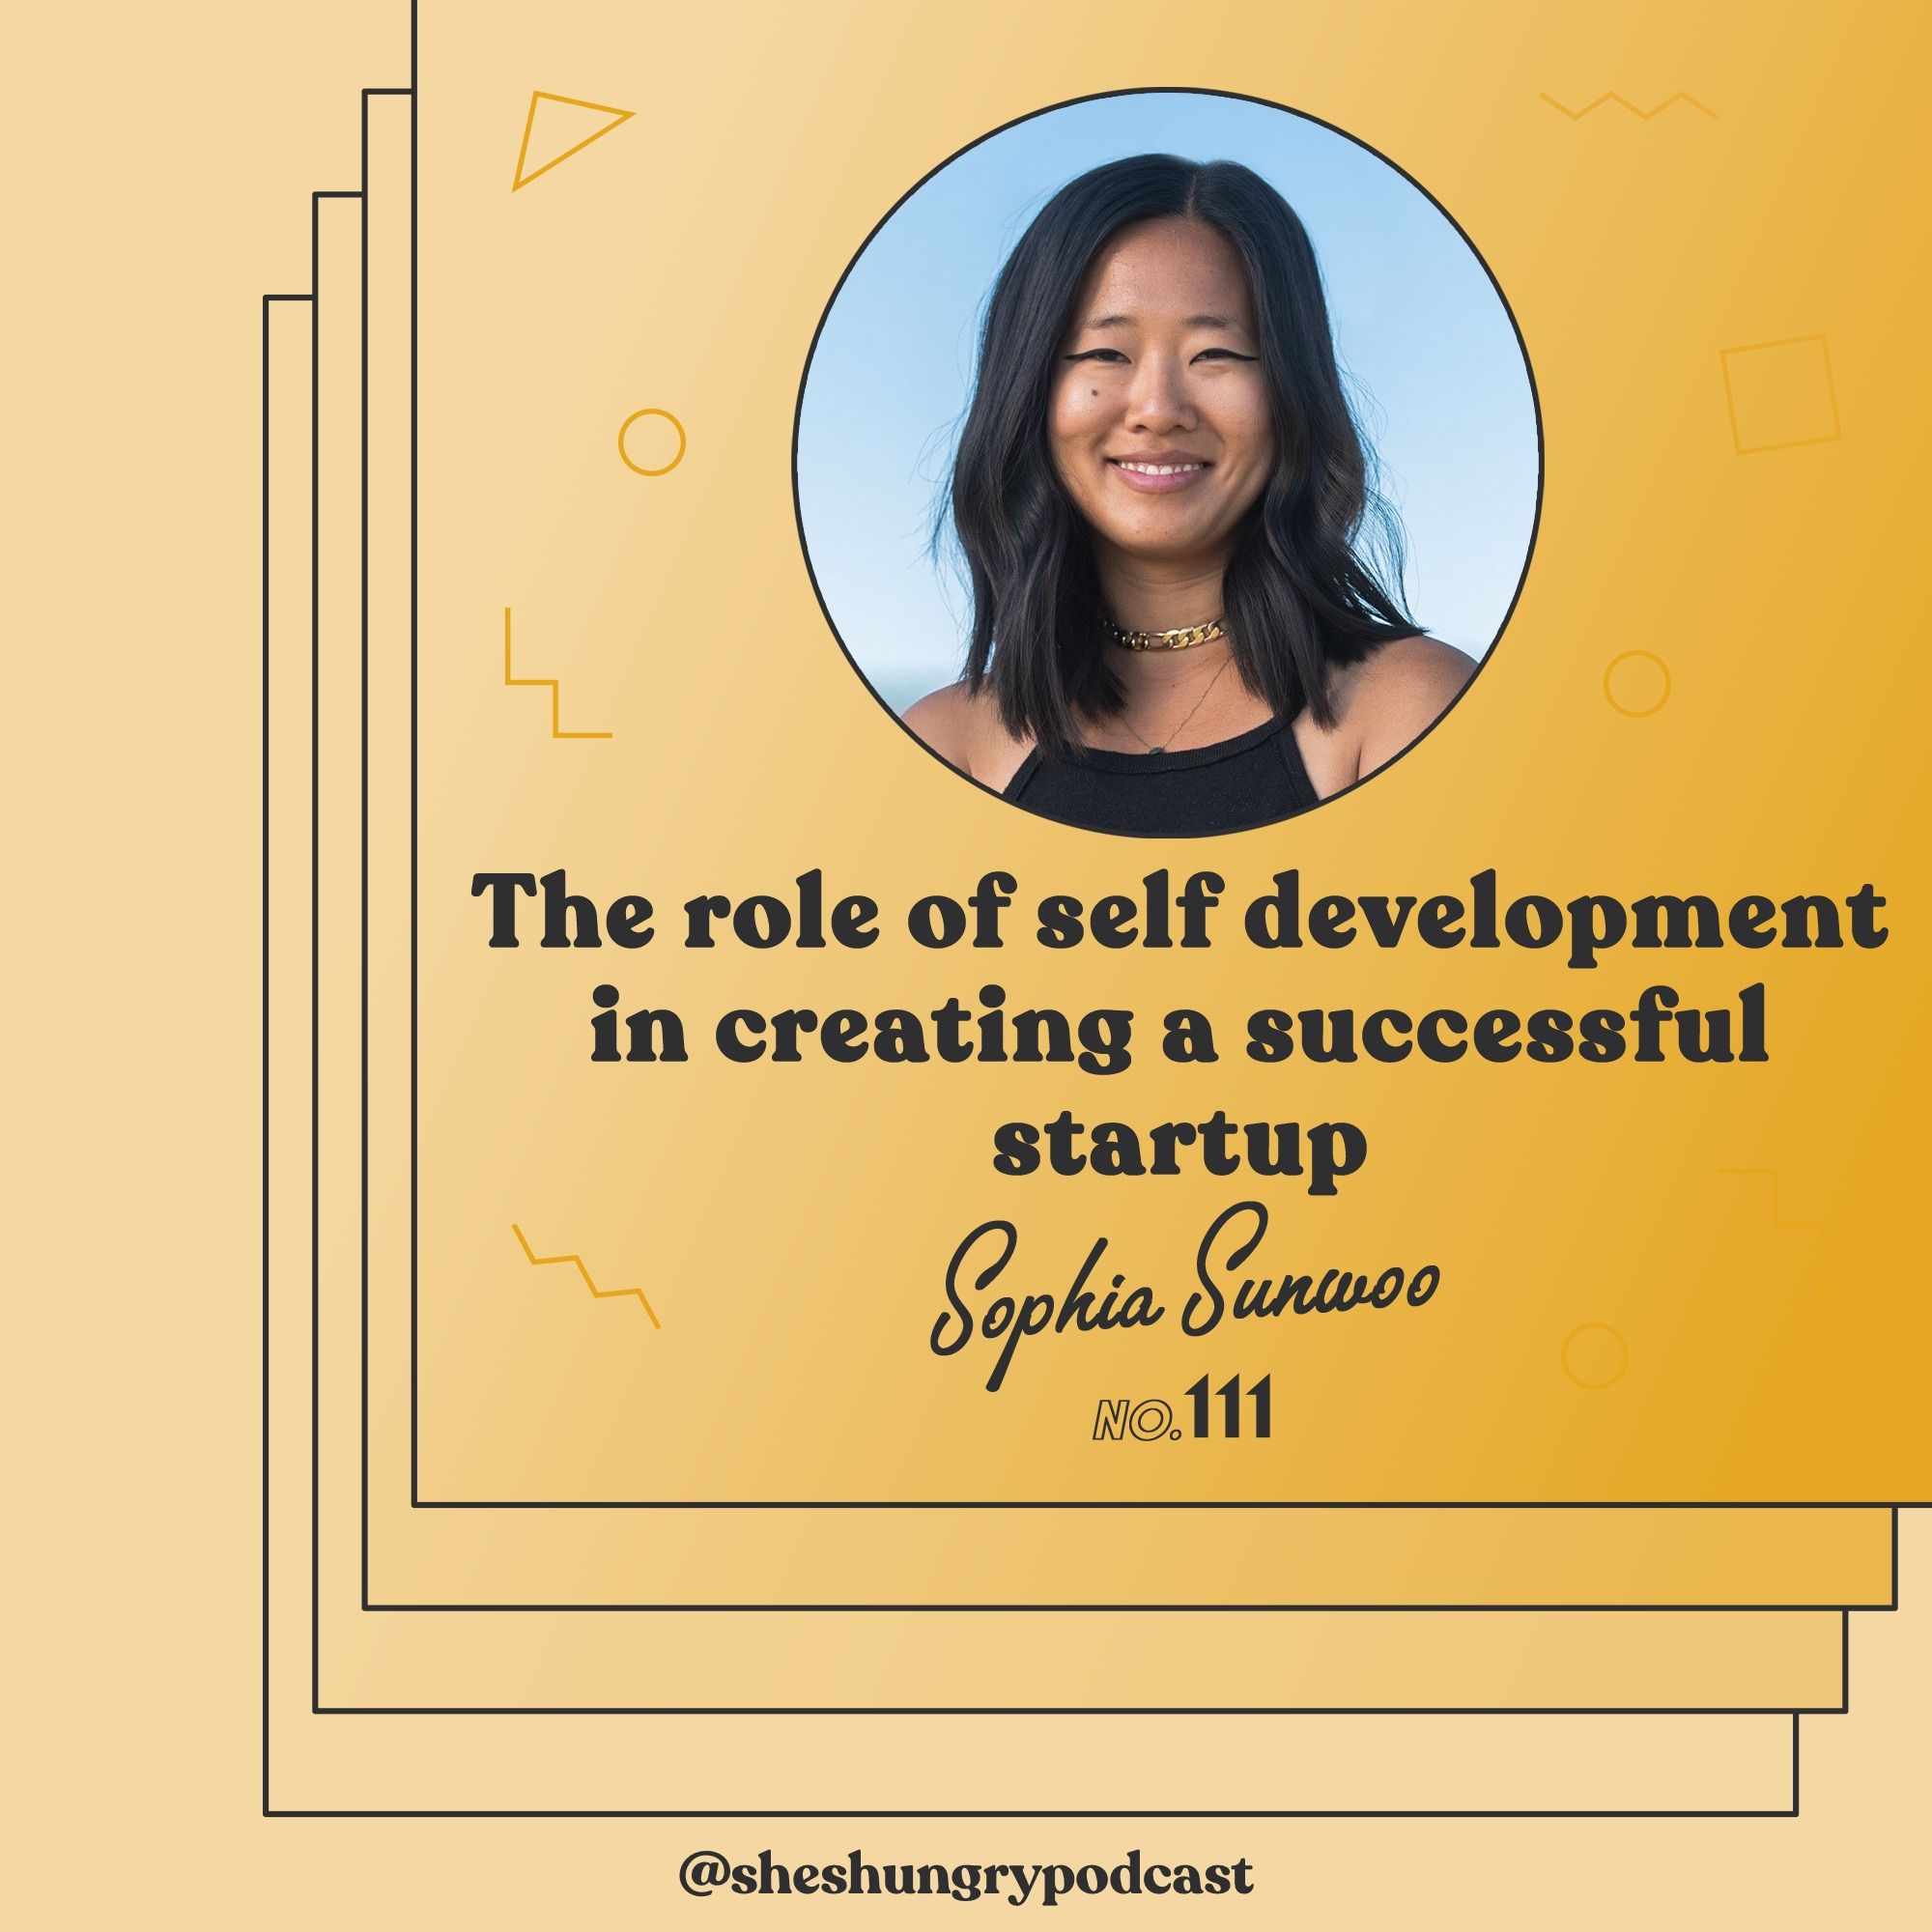 The Role of Self Development in Creating a Successful Startup, with Sophia Sunwoo